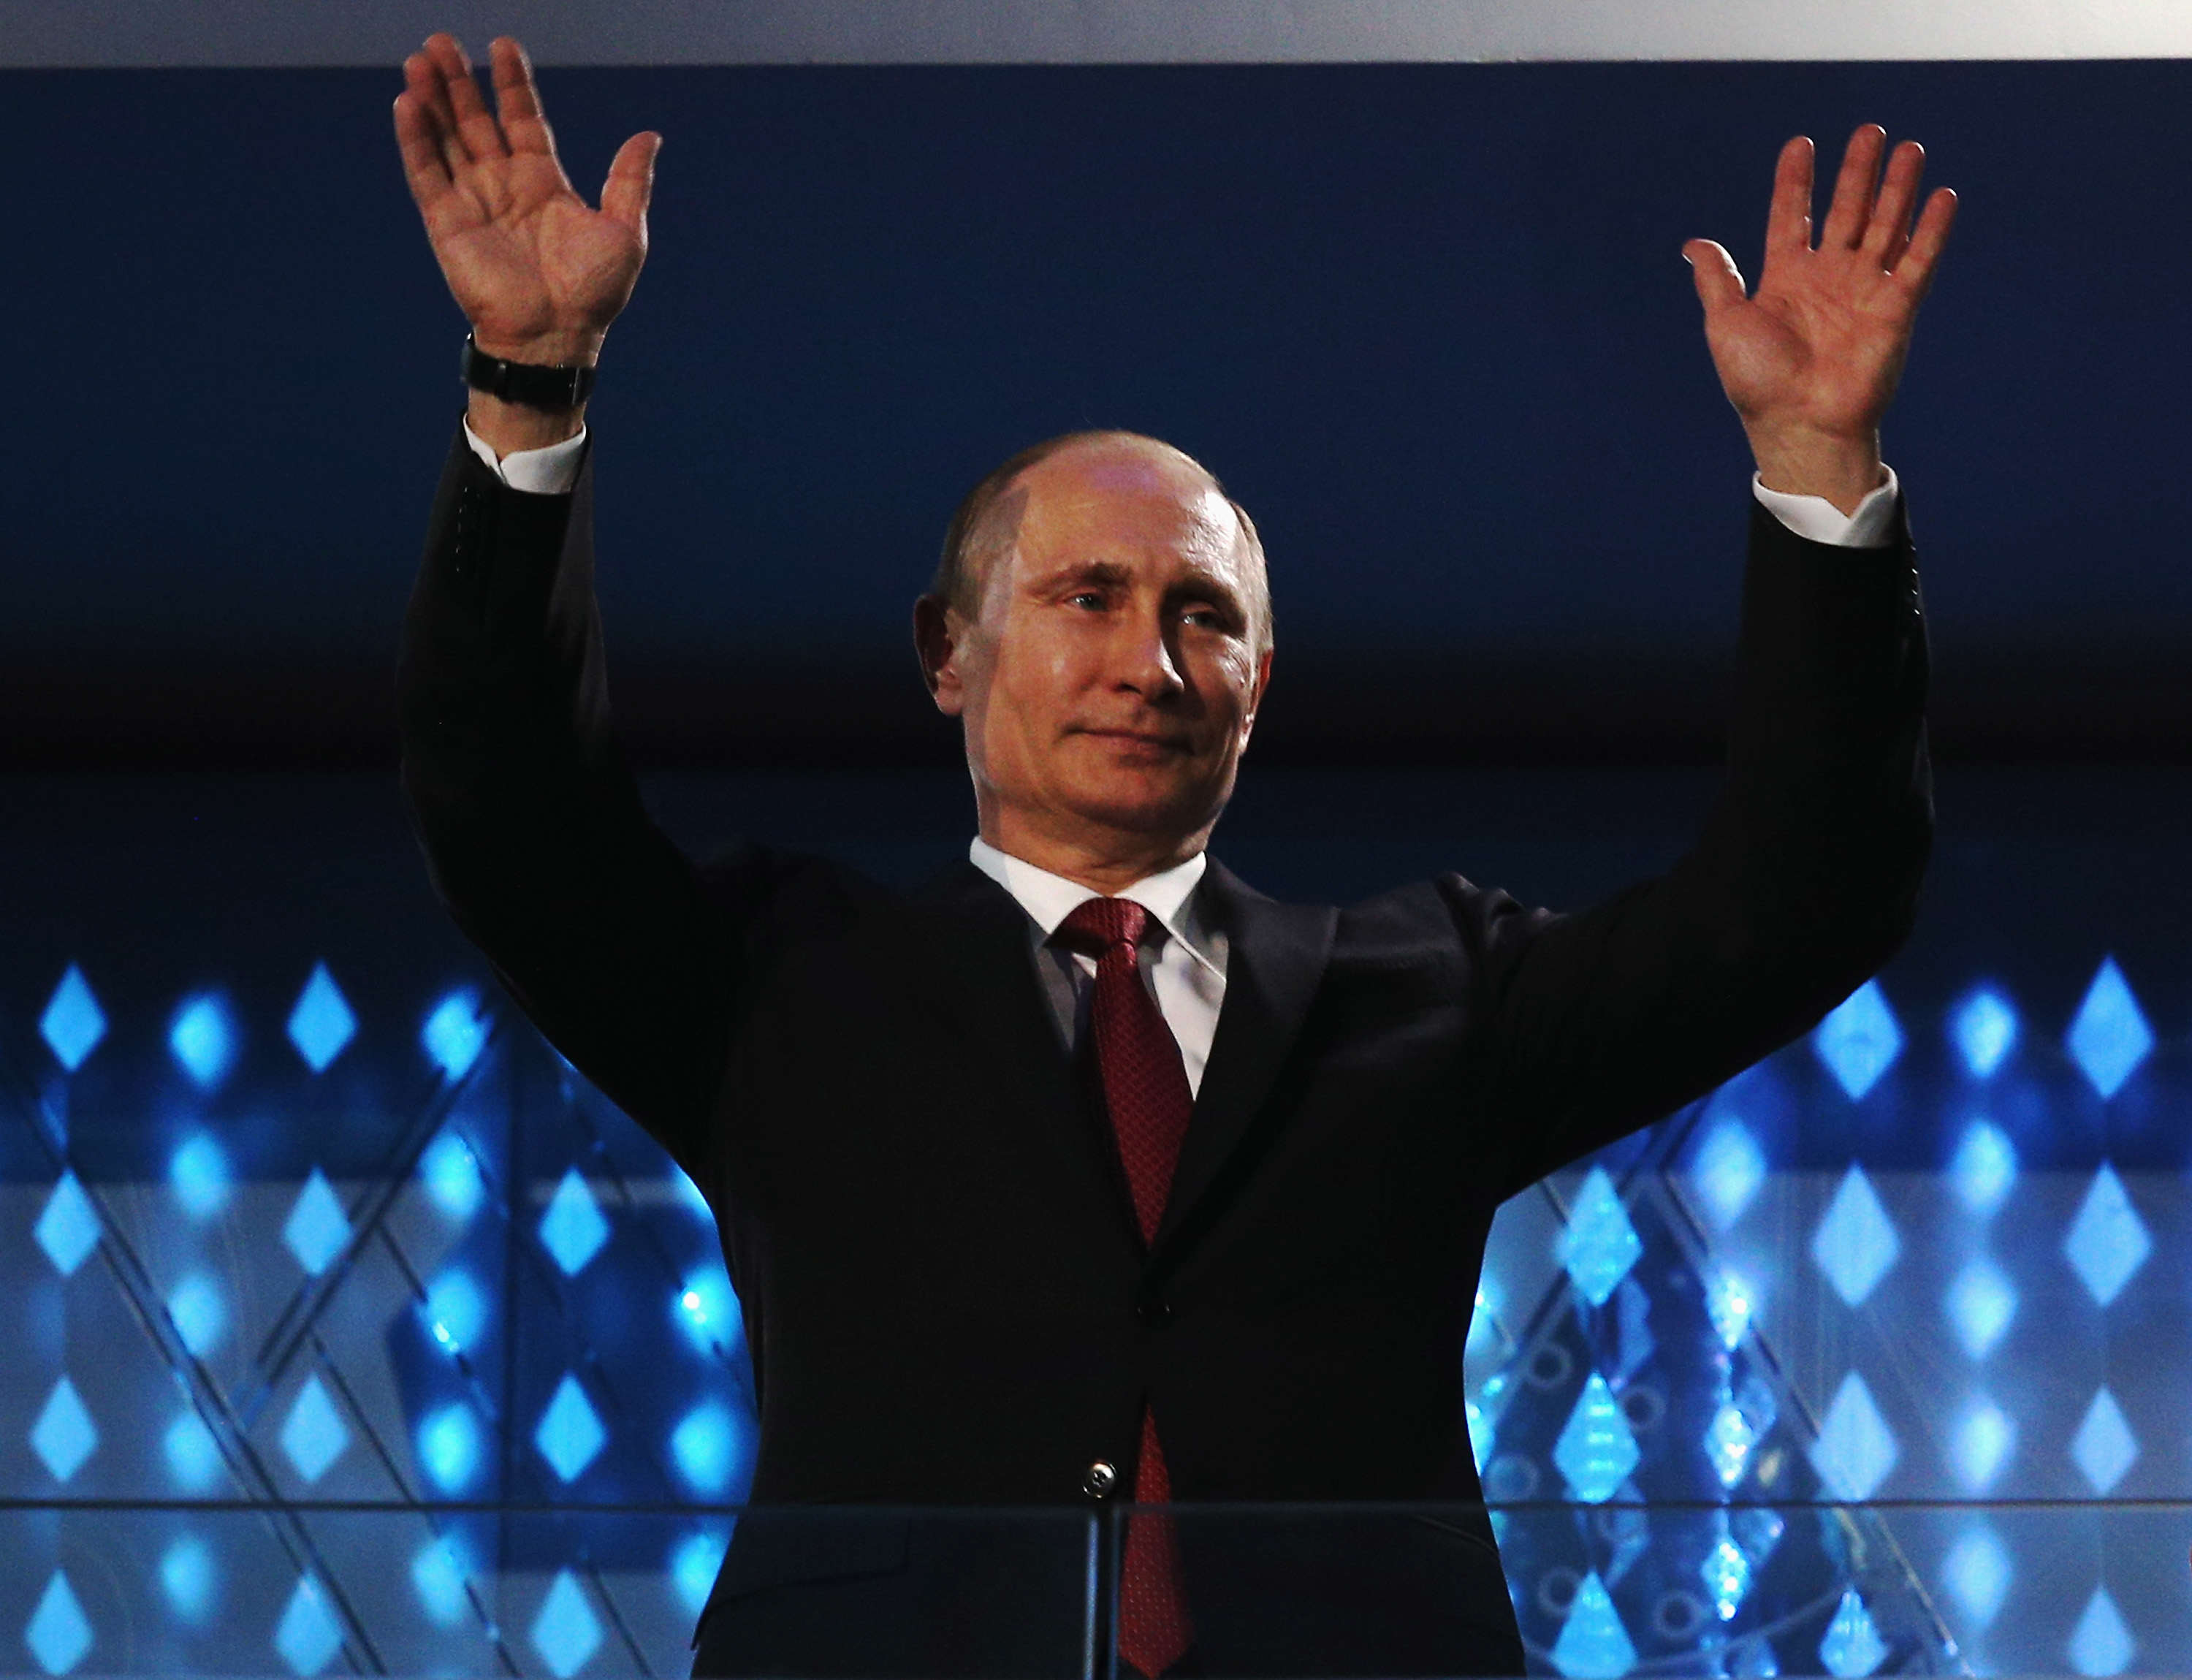 Putin Given Go Ahead To Build Super Army To Destroy ISIS GettyImages 479111301